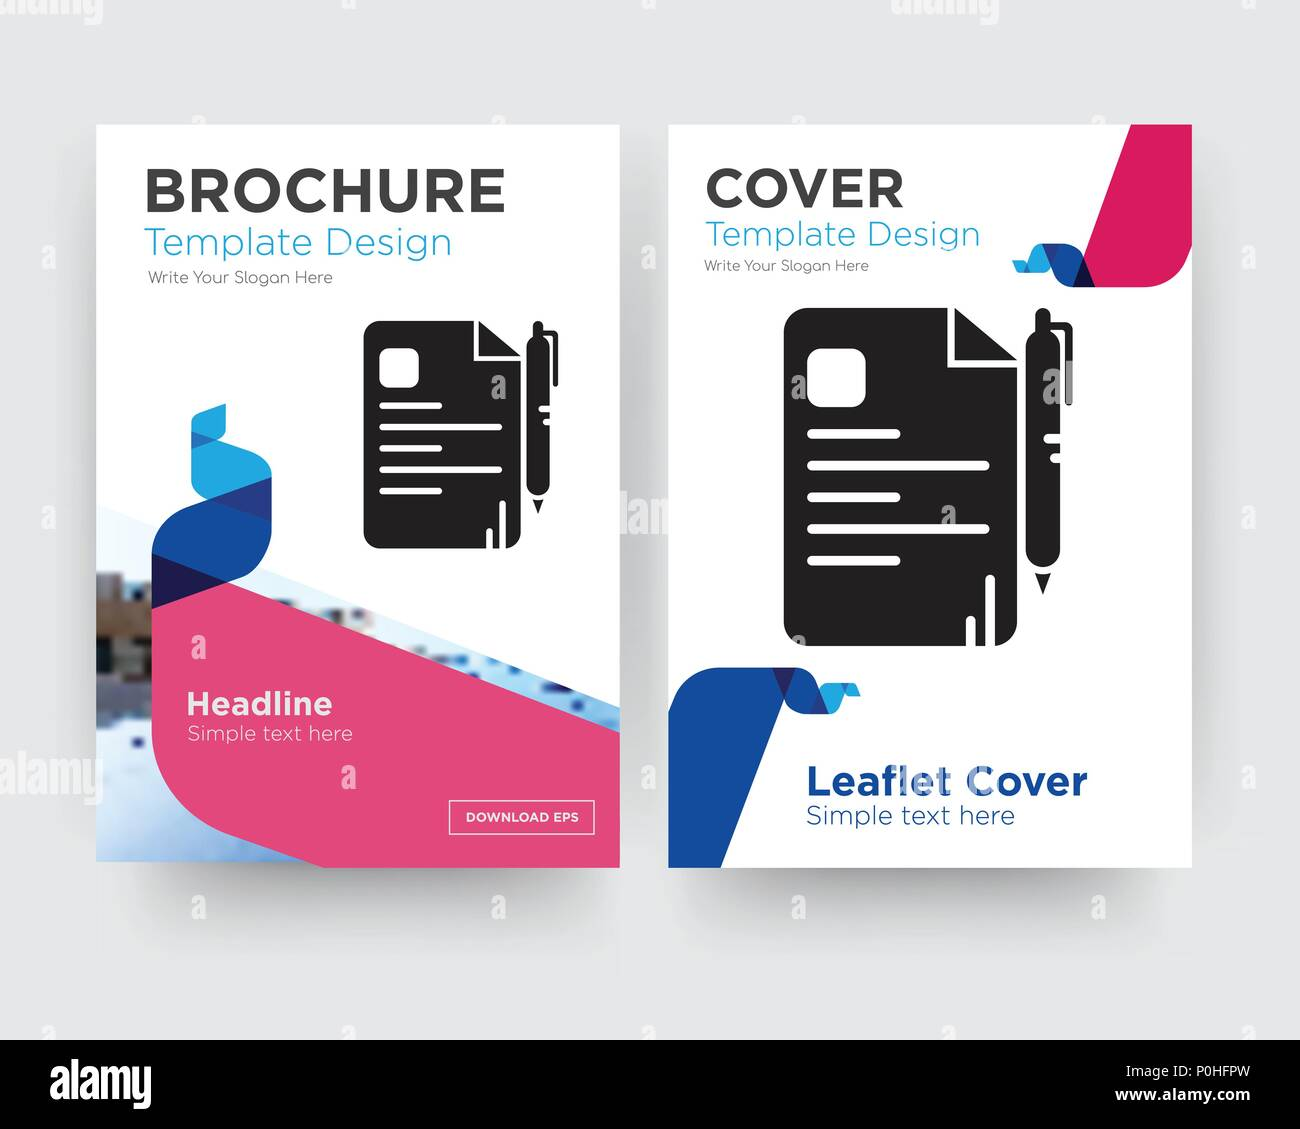 file brochure flyer design template with abstract photo background